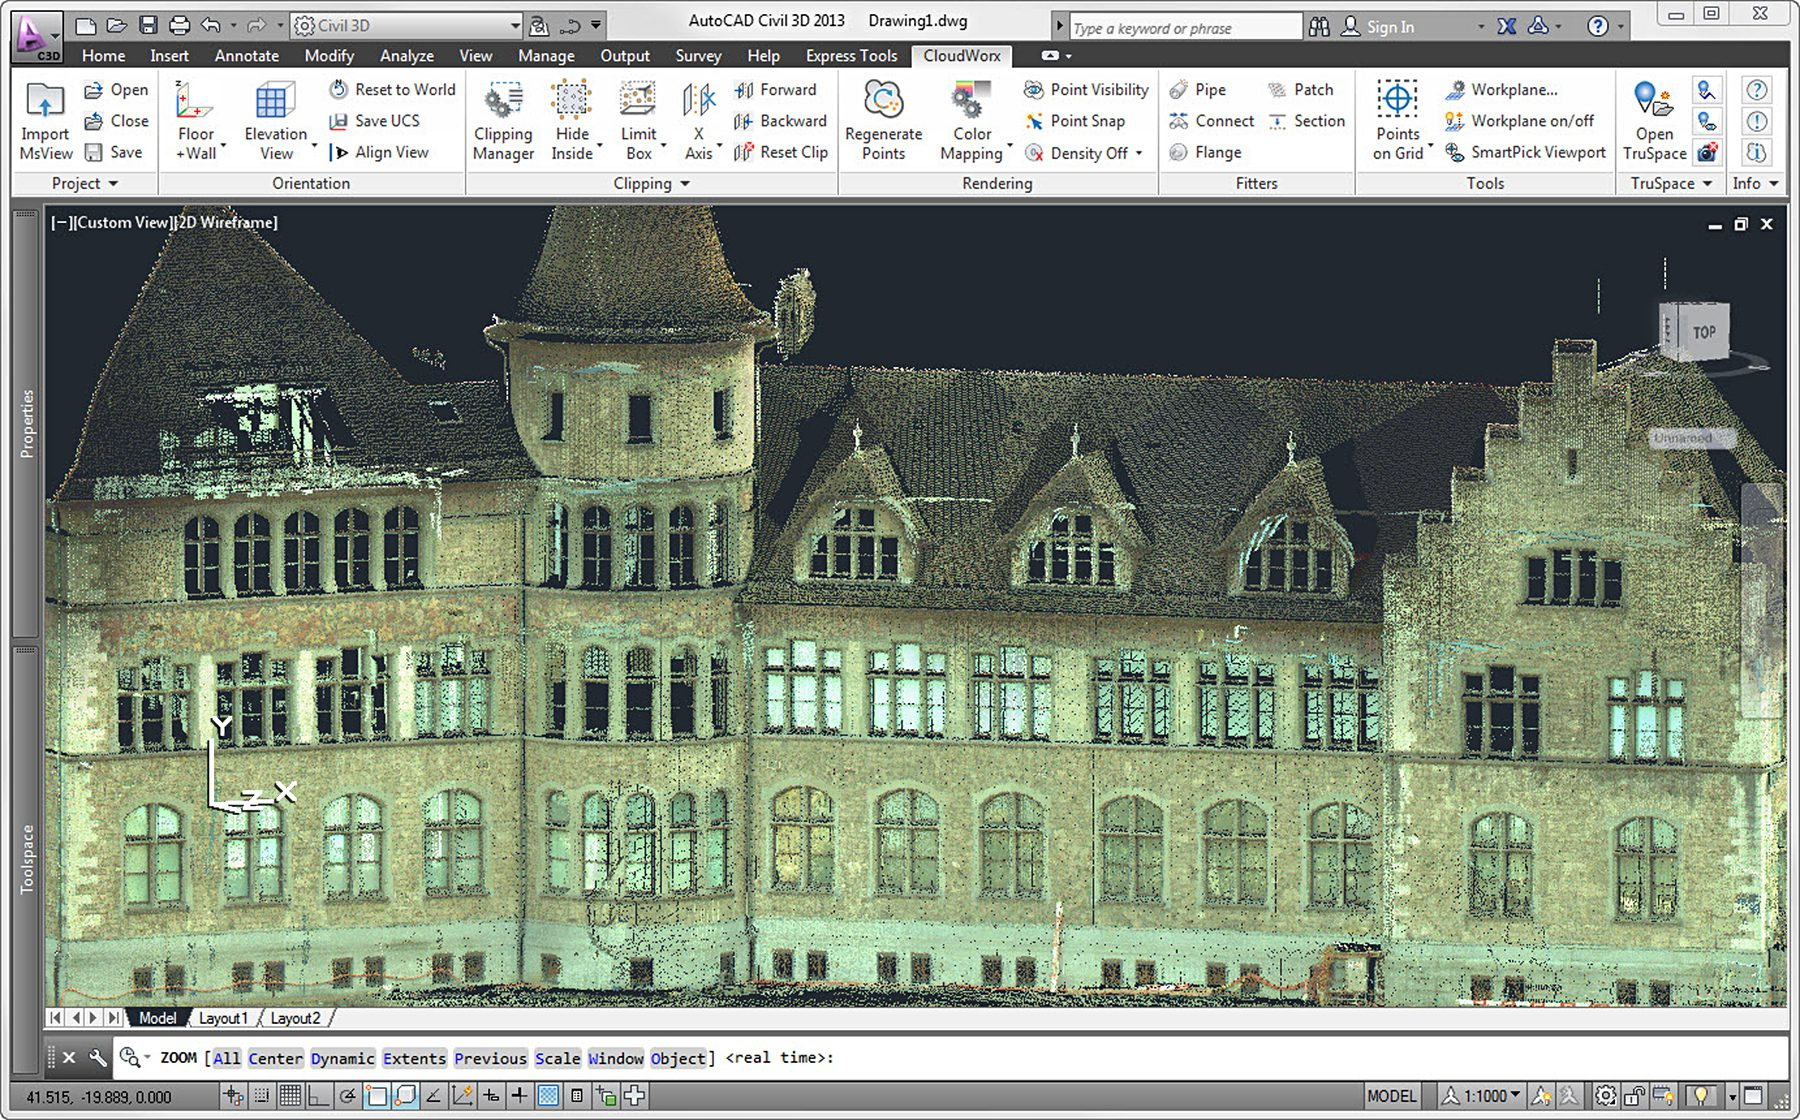 Leica Updates Cloudworx Plug Ins For Working With Point Clouds In Piping Layout Autocad 3ds Max And Pdms